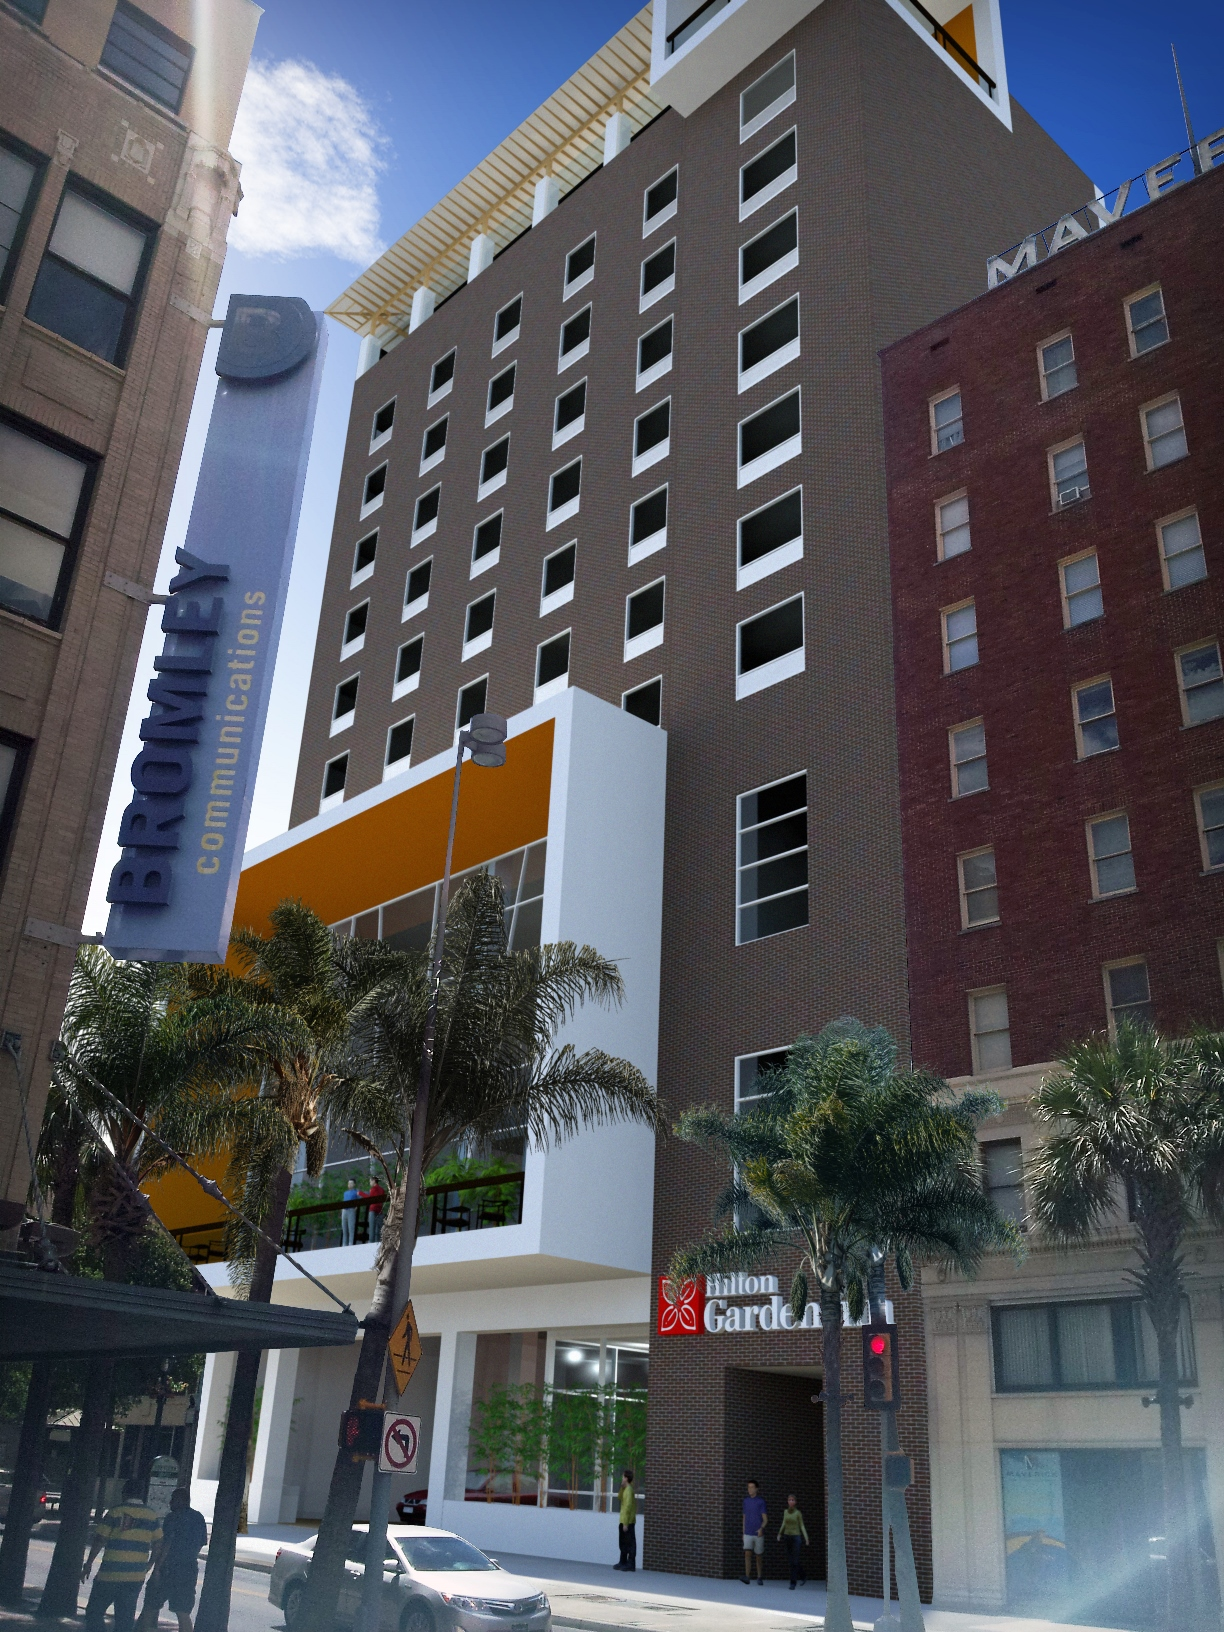 Hotels Inn Hilton Garden Inn San Antonio Downtown Expands Presence